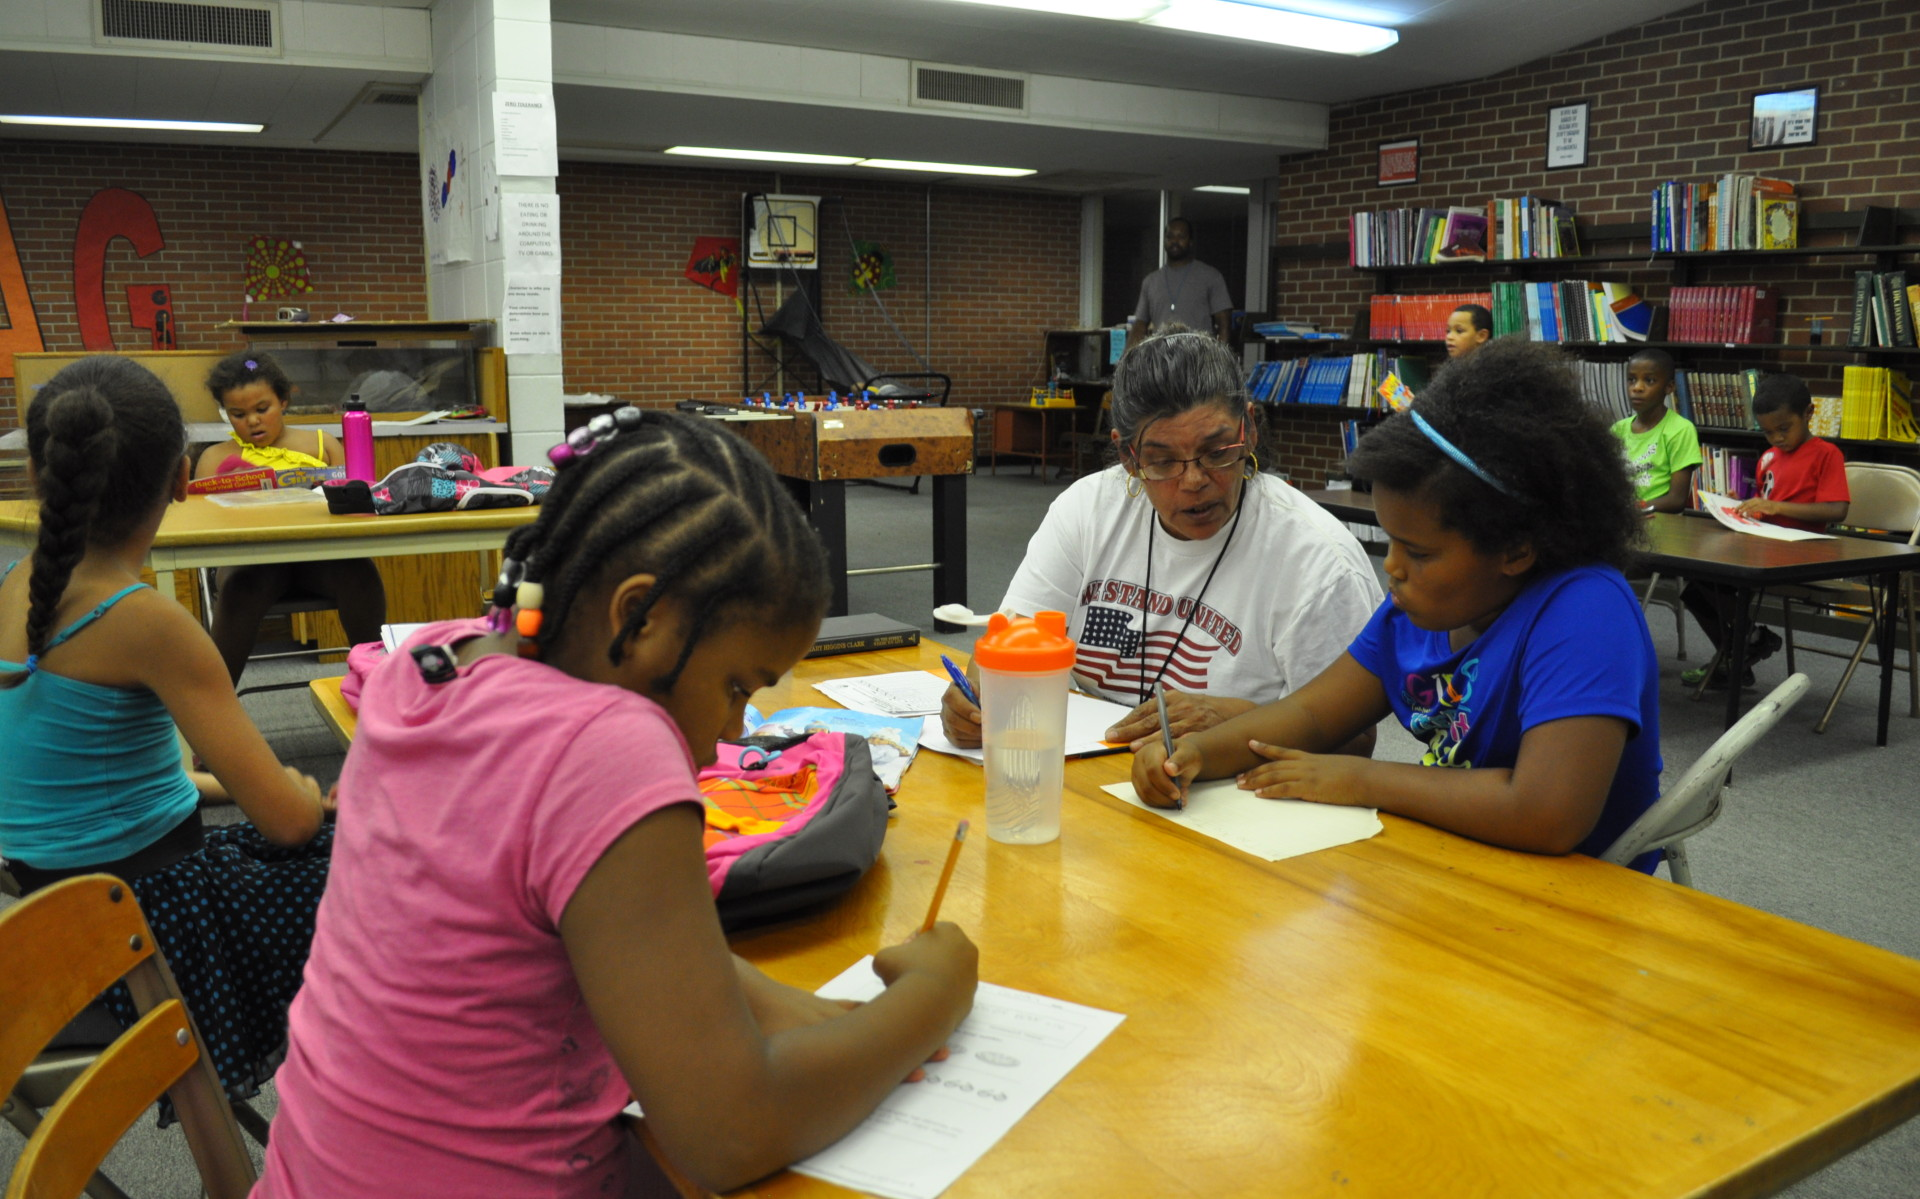 After School Mentors   Athens Clarke County  GA   Official Website Brooklyn Public Library Every Tuesday and Thursday  Hope Box Club members volunteer at Guiding  Light Project Homework club located in east San Jose